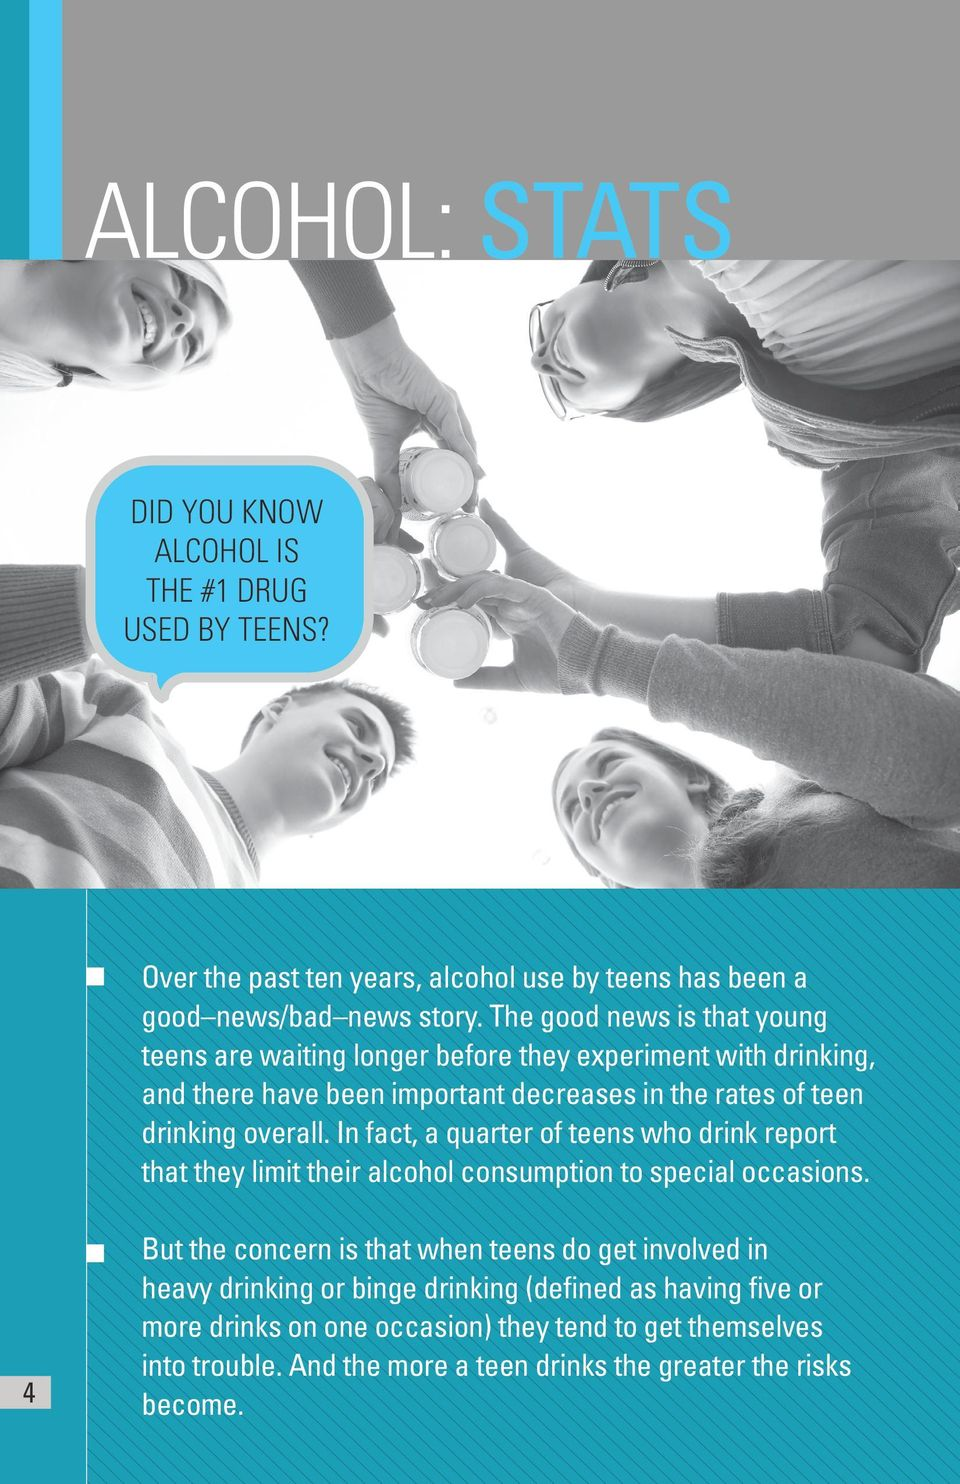 overall. In fact, a quarter of teens who drink report that they limit their alcohol consumption to special occasions.